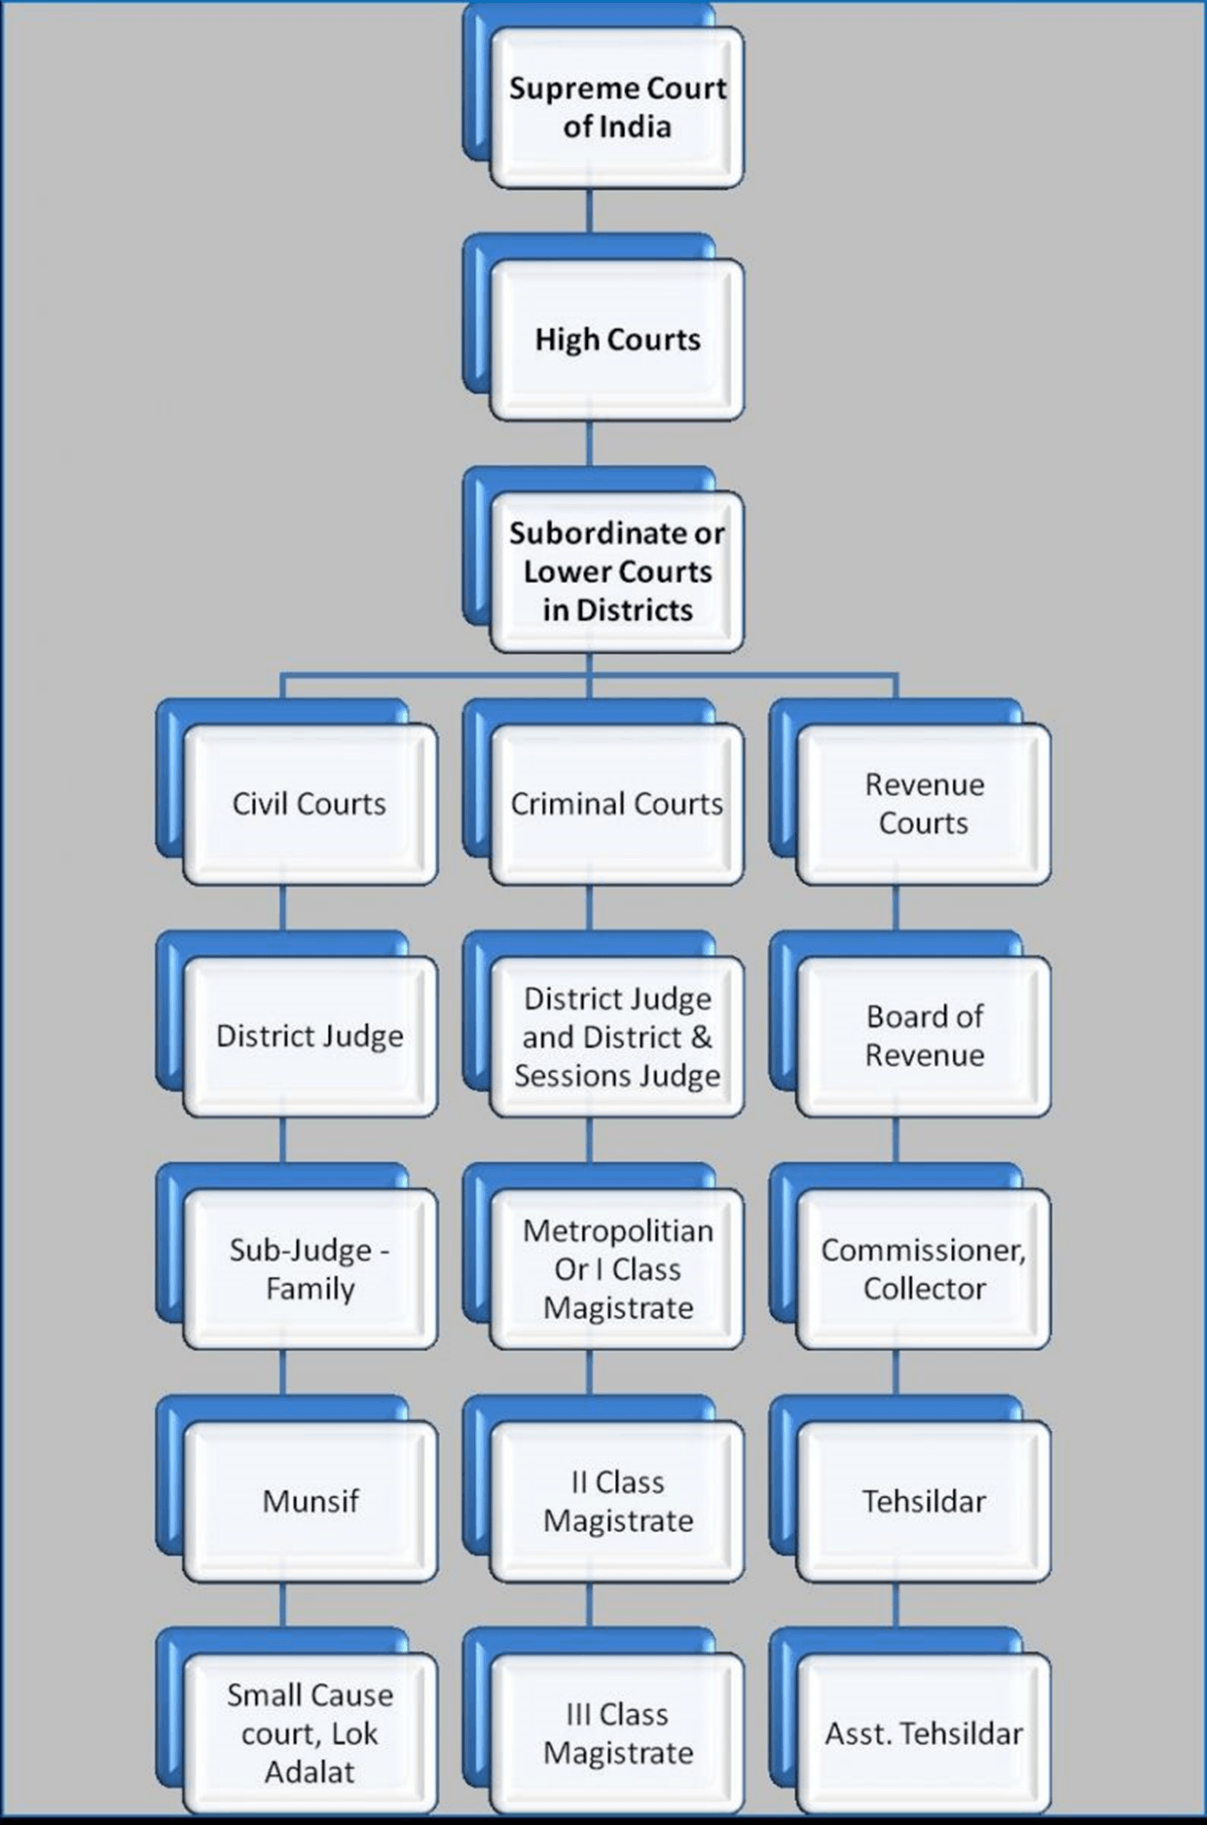 Image of Hierarchy of Courts of India